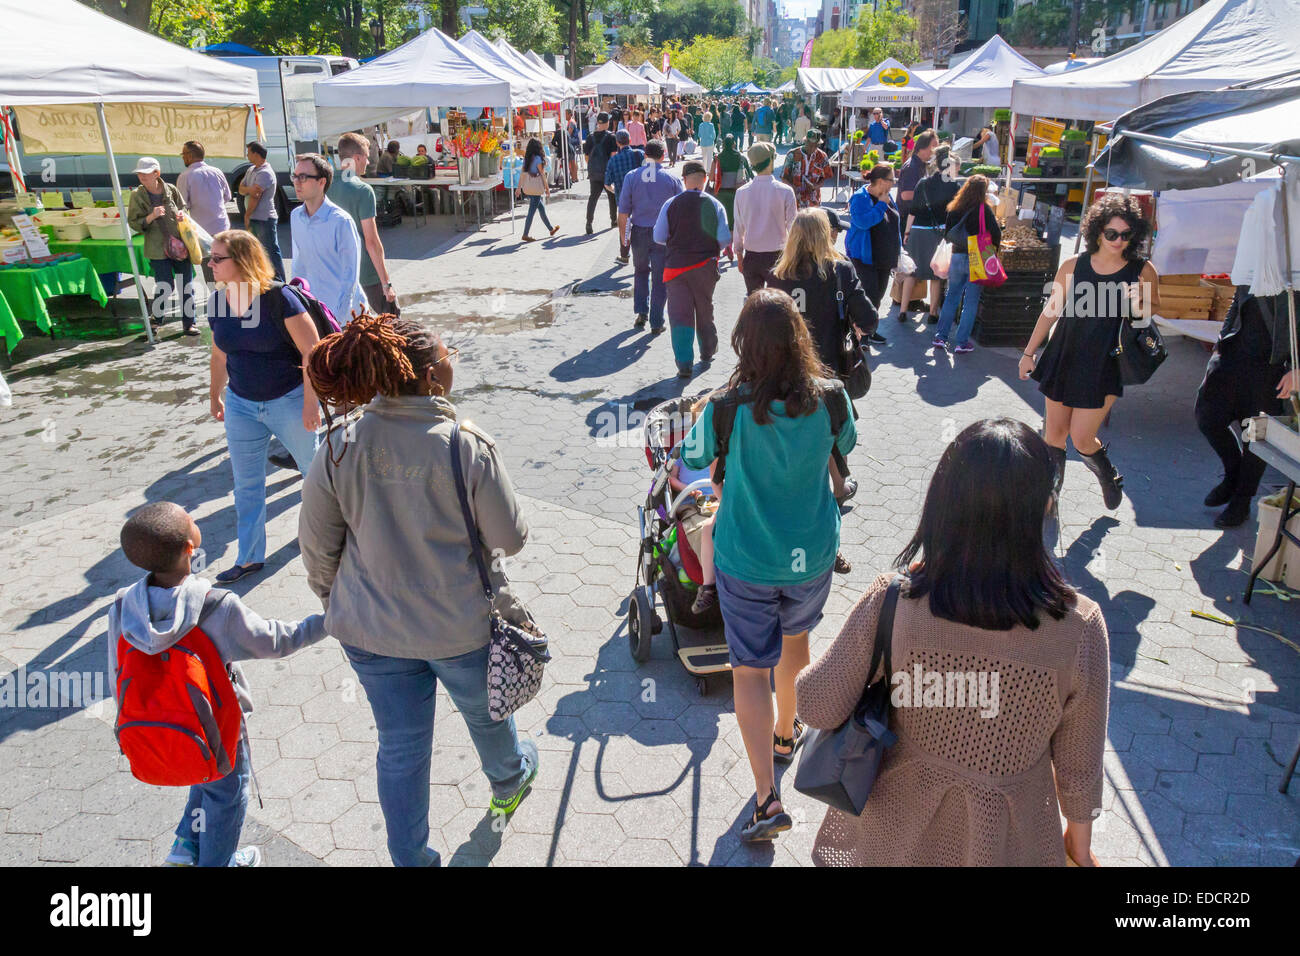 Shoppers walking in the farmer's market in Union Square, New York City. - Stock Image